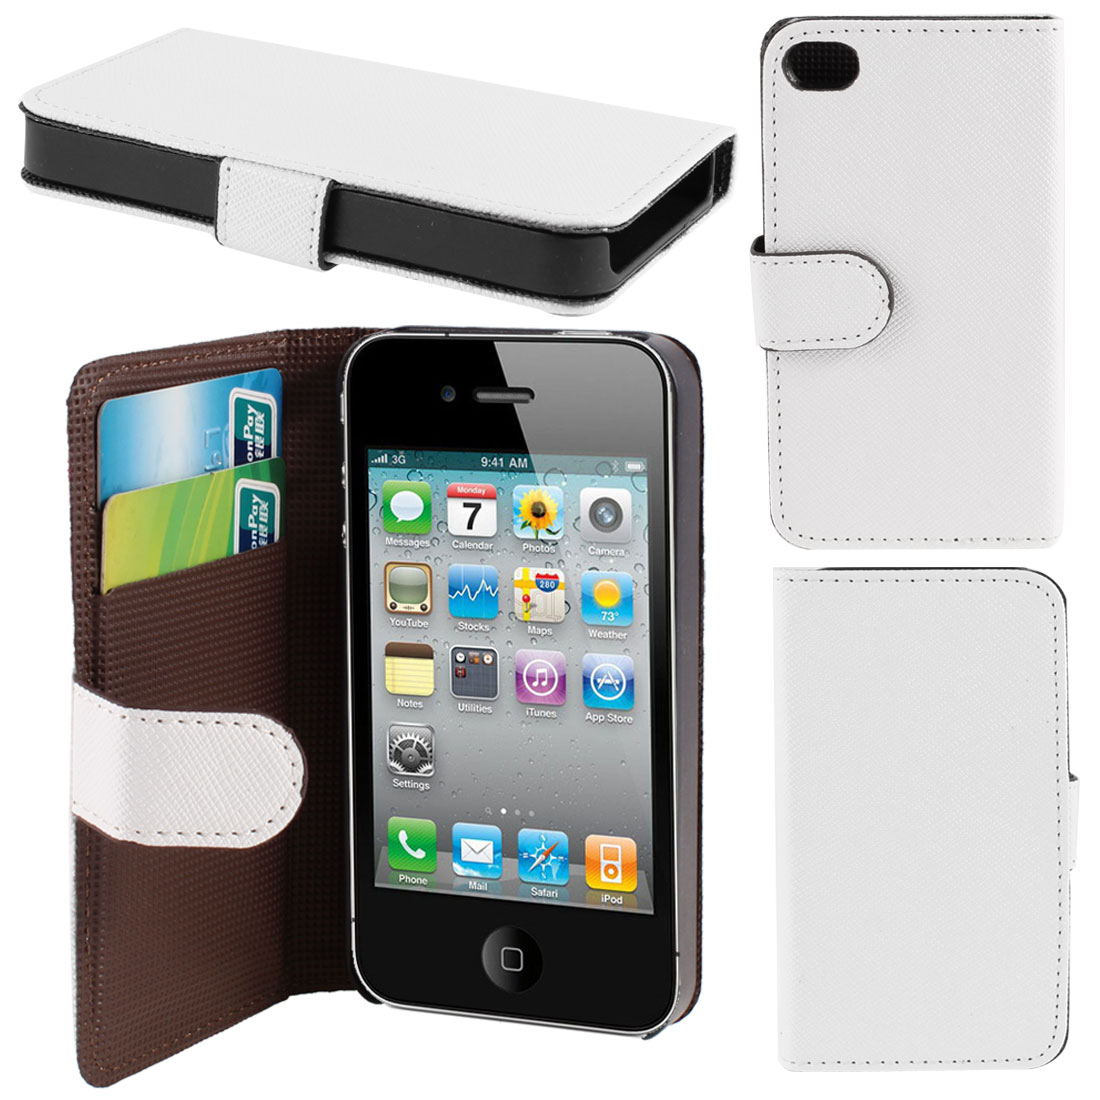 White Textured PU Leather Card Holder Wallet Case Cover for iPhone 4 4S 4GS 4G